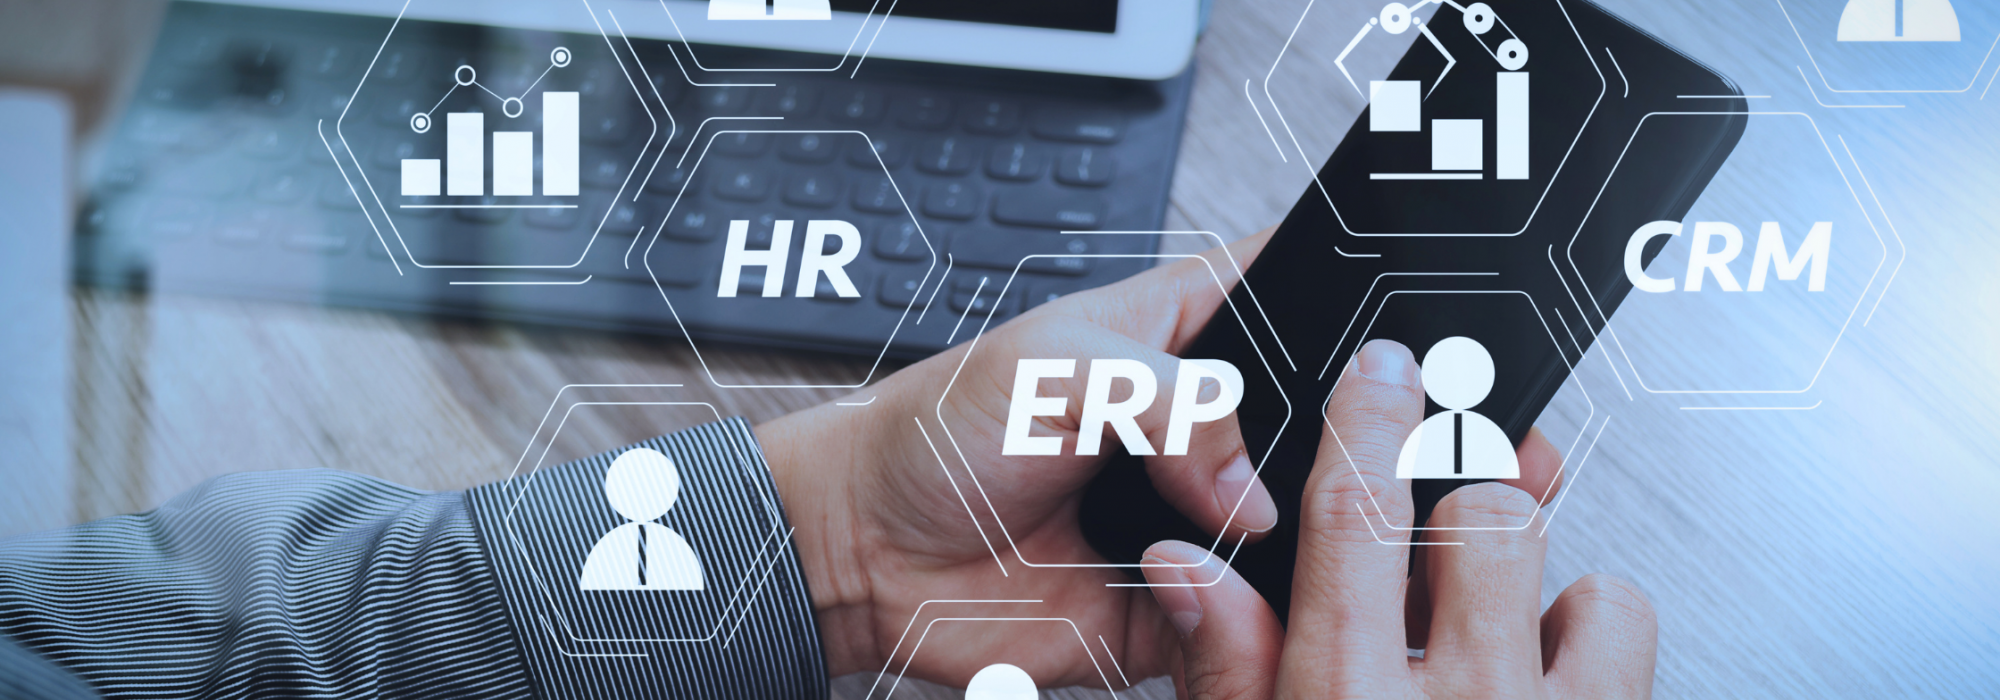 NetSuite ERP or CRM: Which is right for your business?